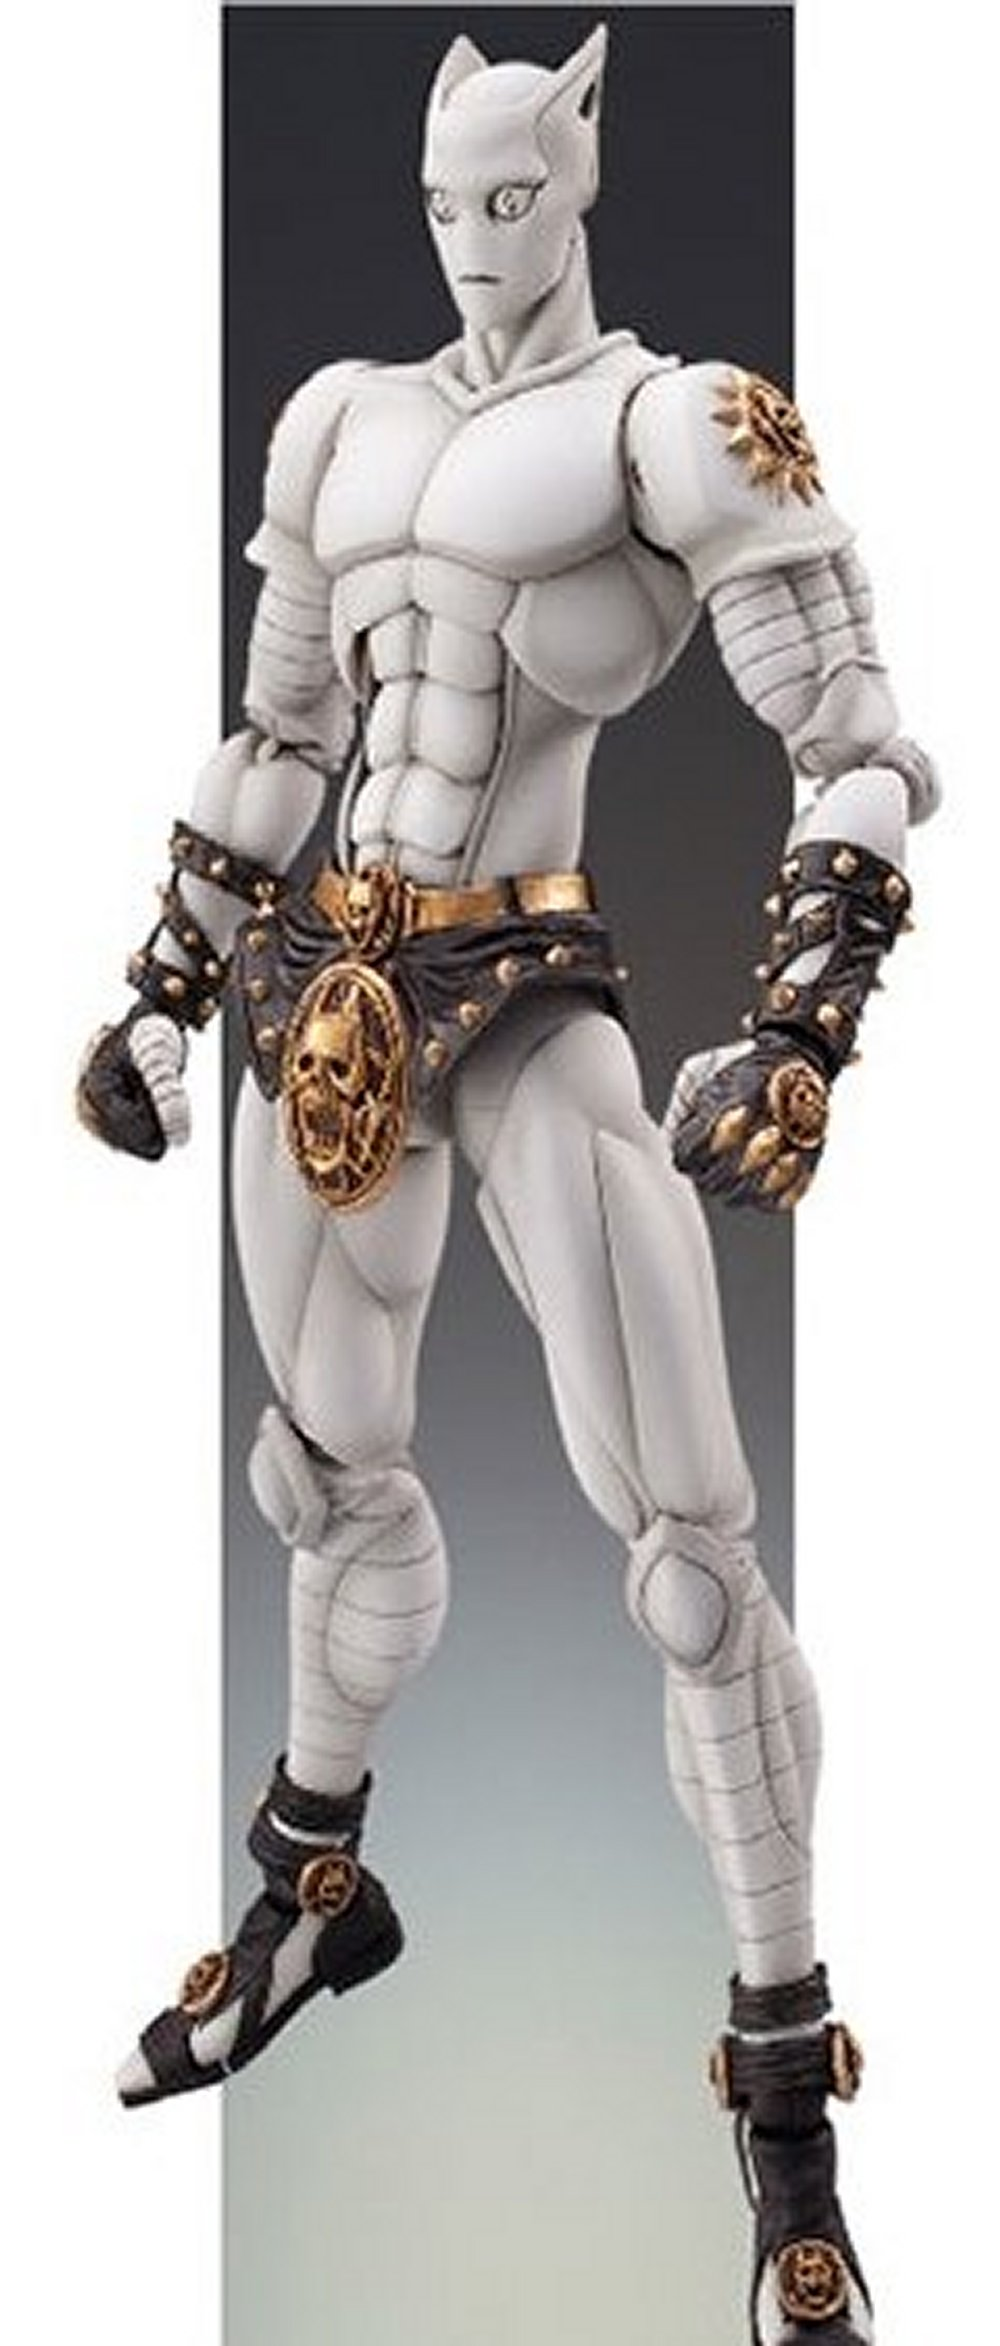 JoJos Bizarre Adventure - Killer Queen Action Statue Part.IV